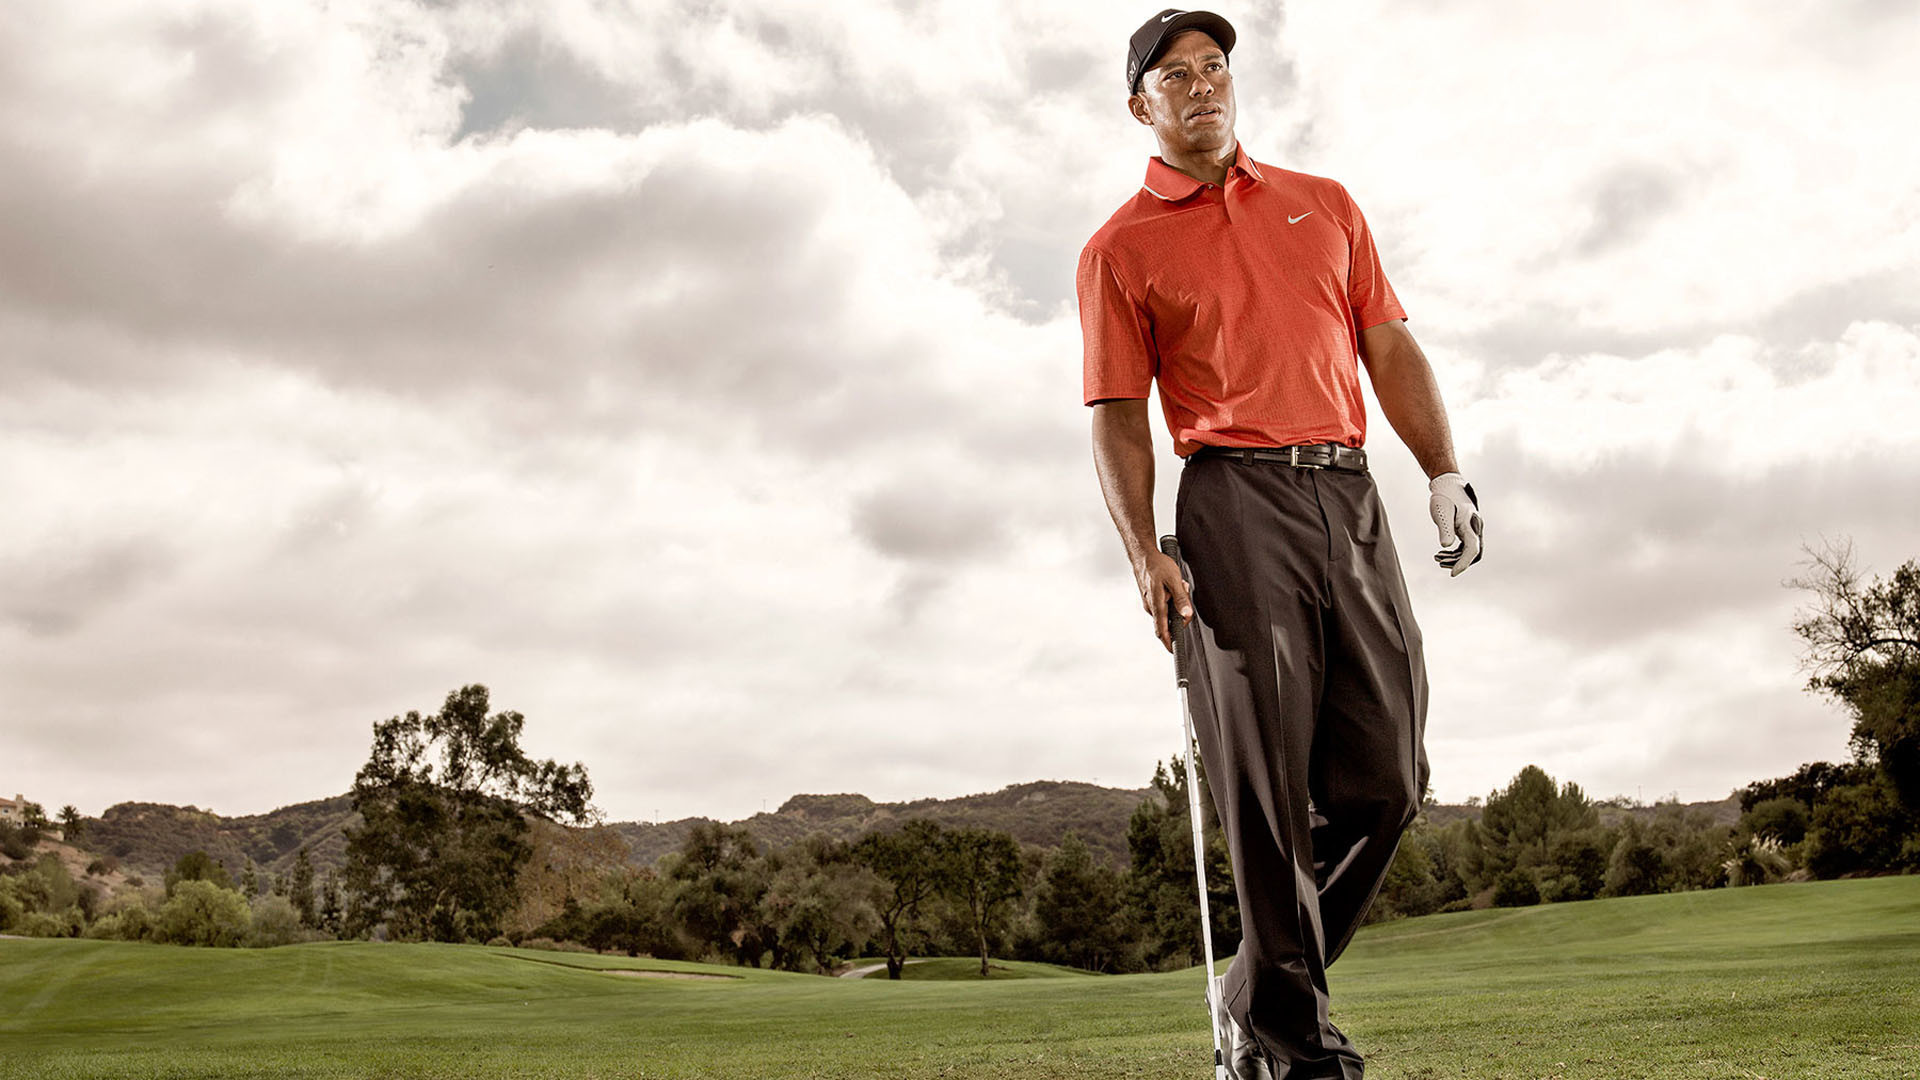 Nike Quotes Wallpaper Iphone 6 Tiger Woods Wallpapers 68 Images